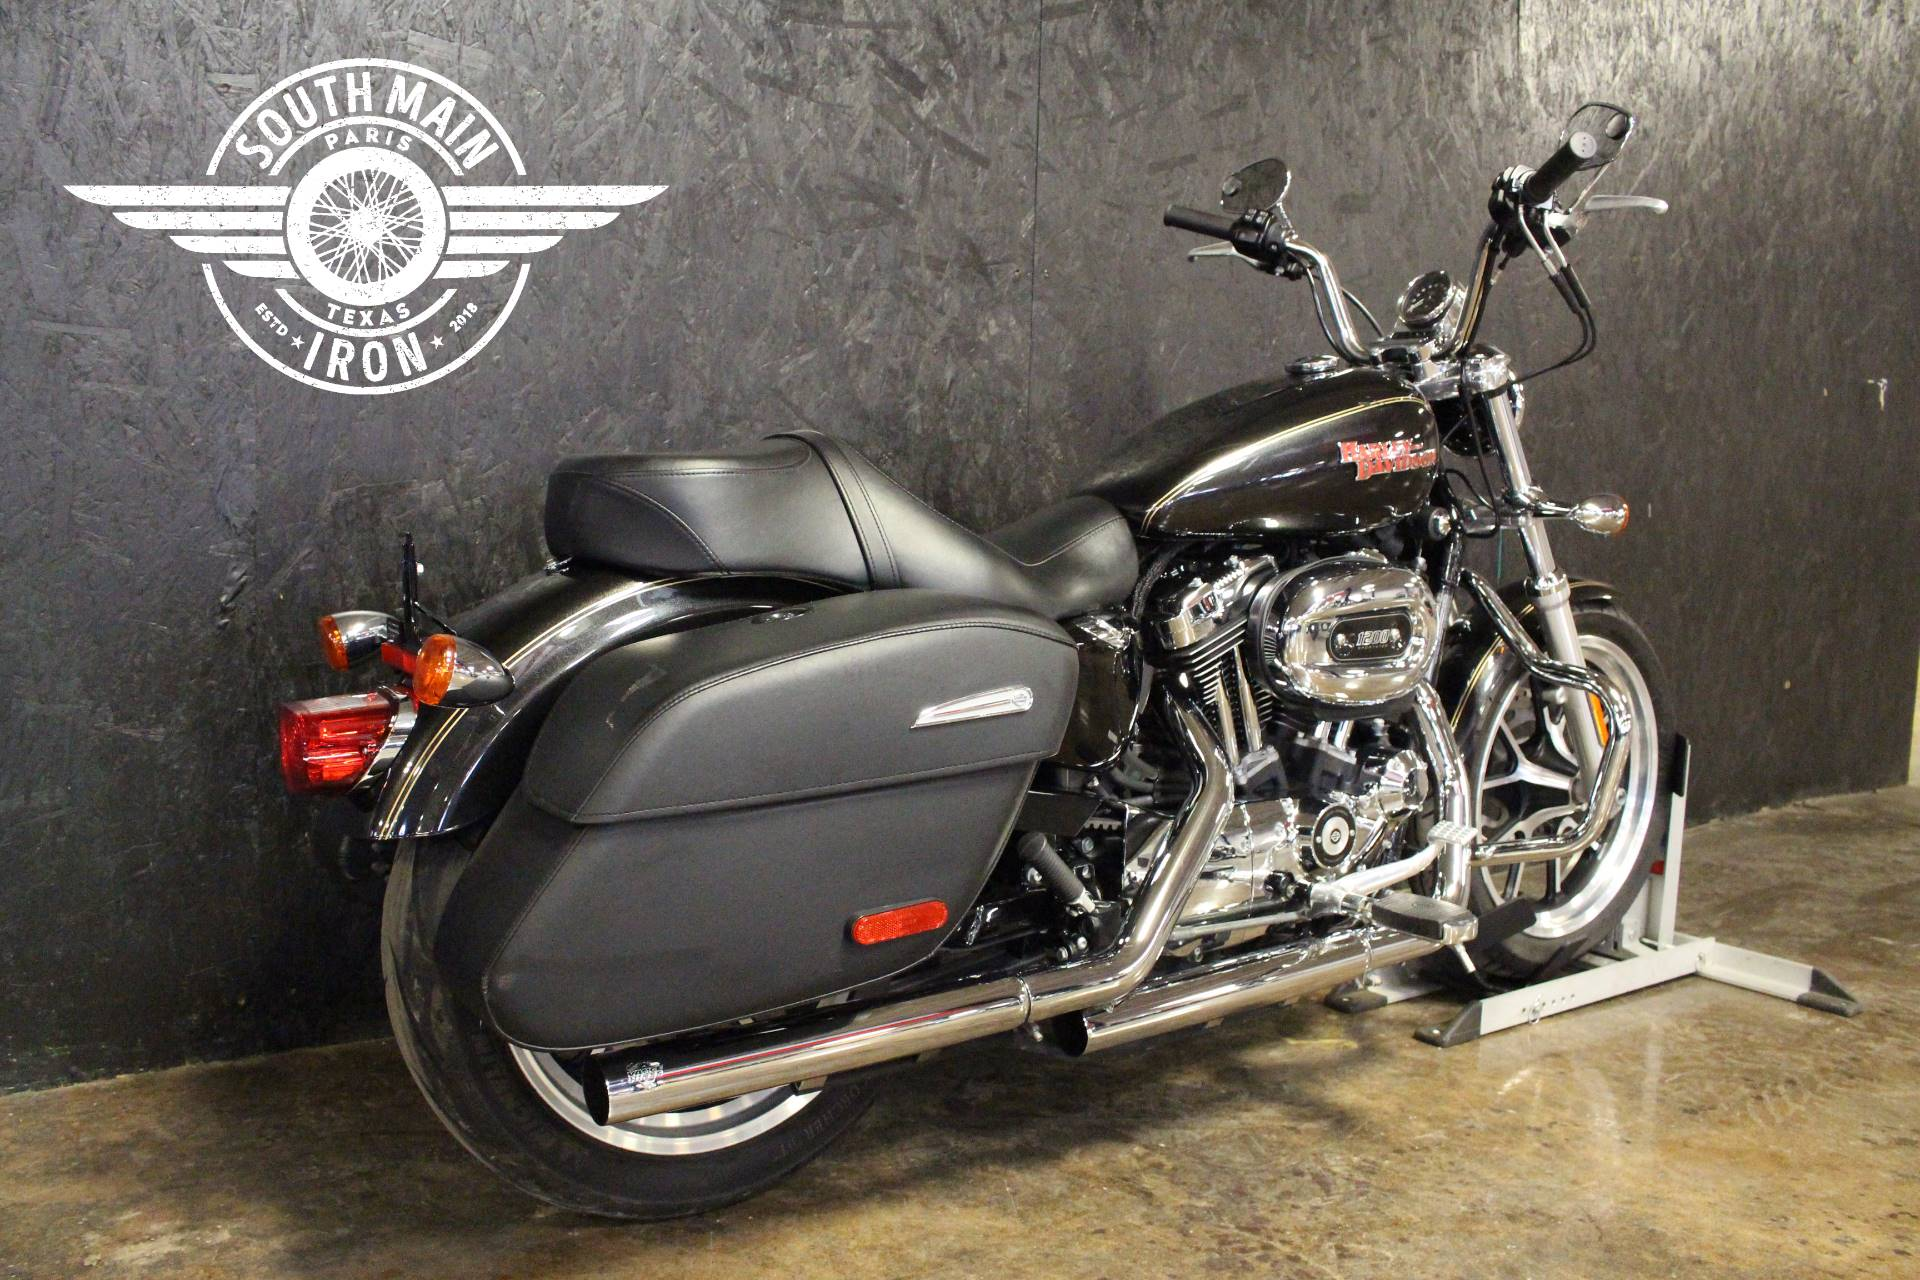 2016 Harley-Davidson XL1200 in Paris, Texas